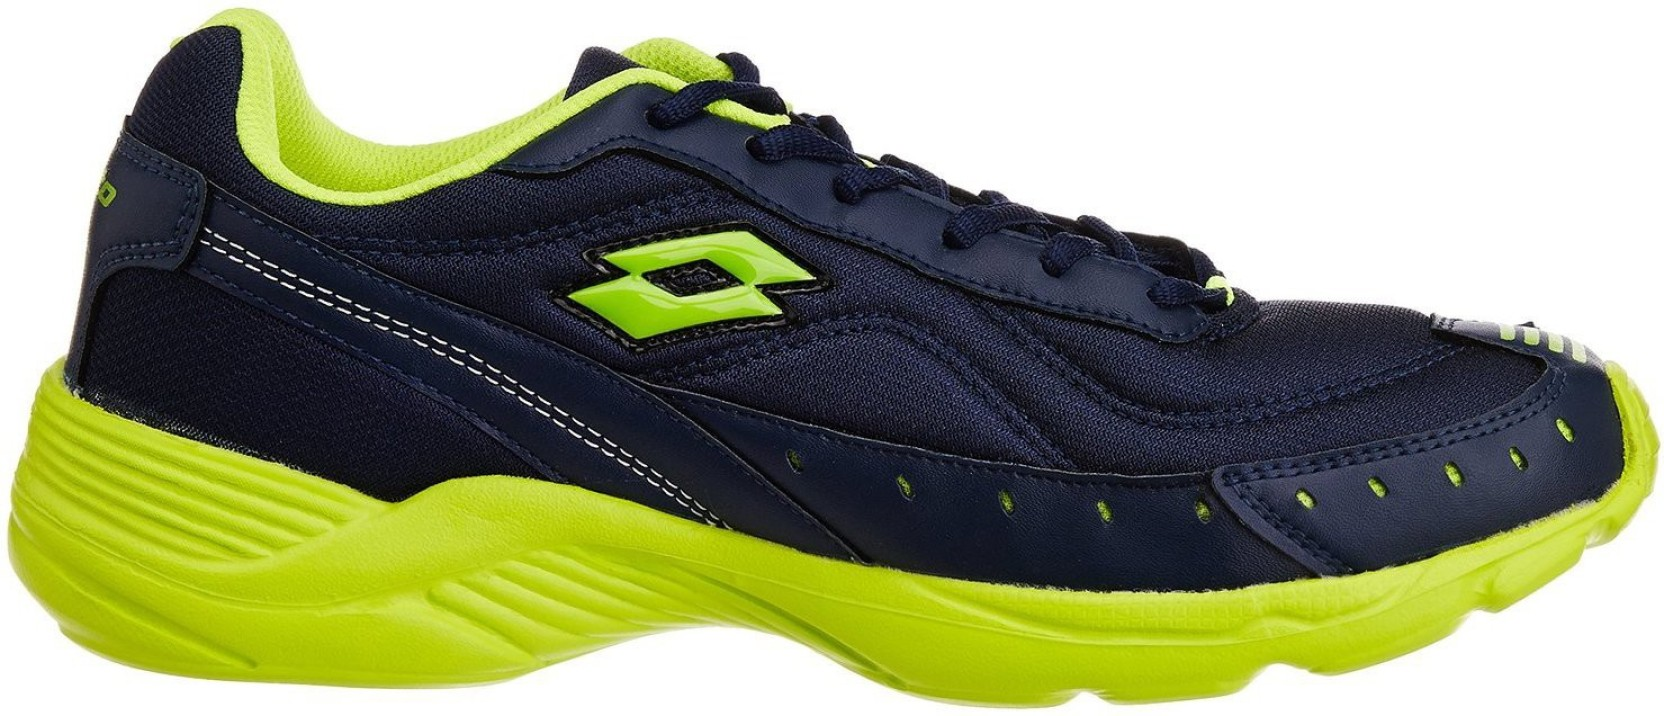 Lotto Rapid Running Shoes Flipkart